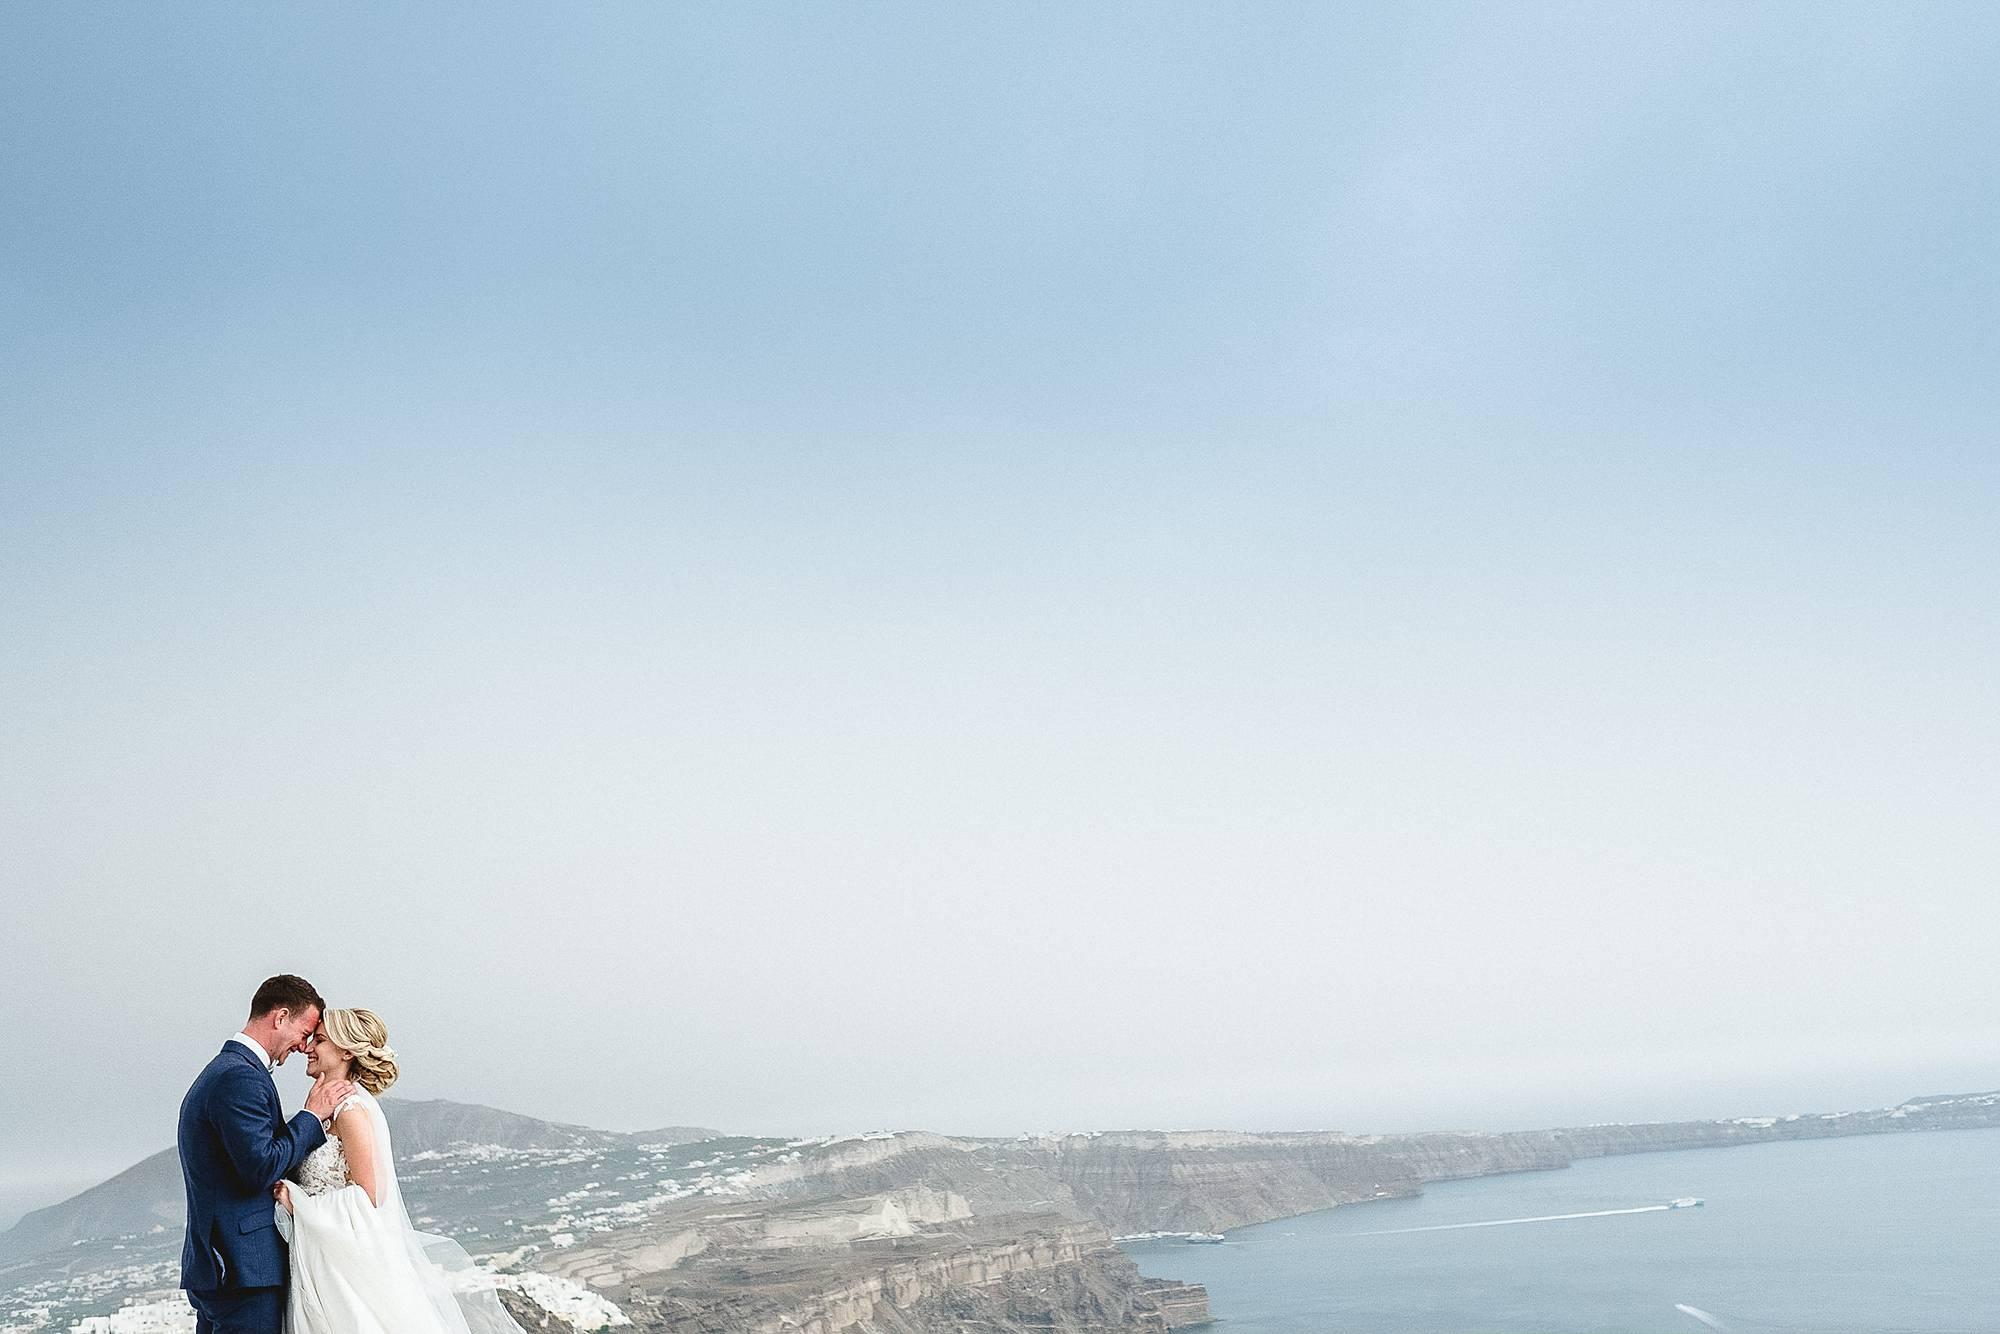 Santorini-Wedding-Photographer-94.jpg